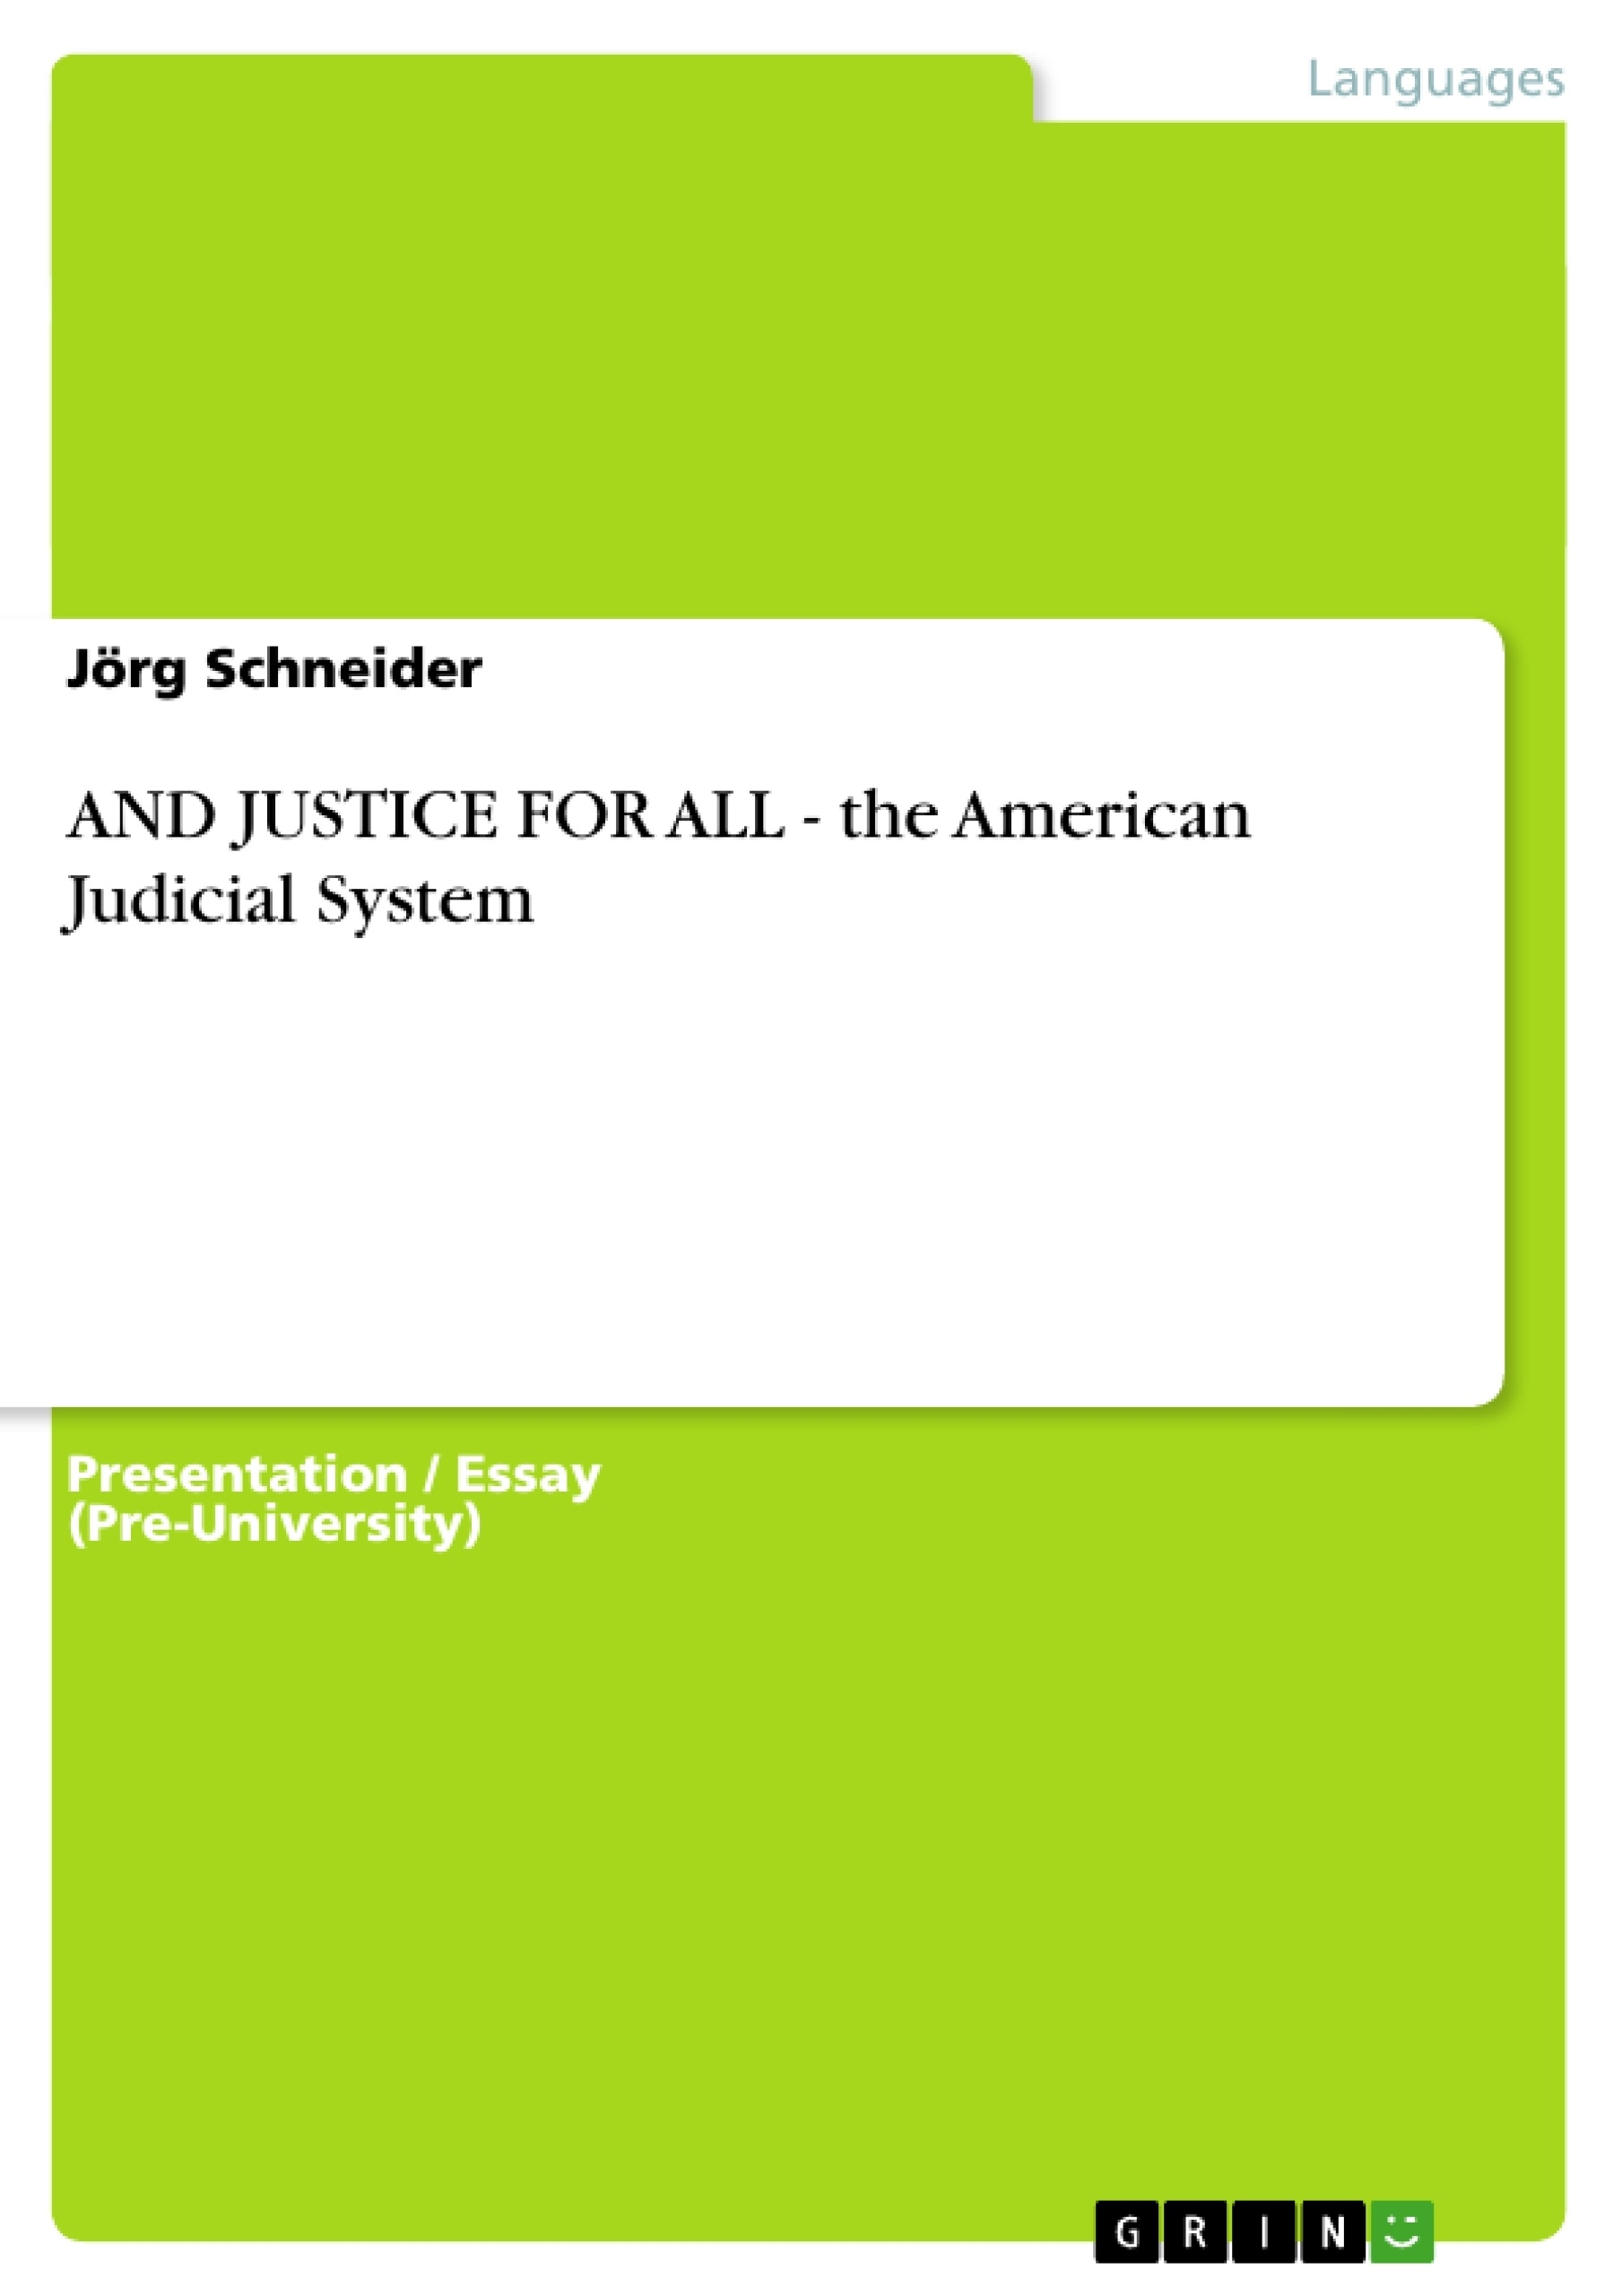 american justice system essay The american criminal justice system is very unique compared to other legal systems around the world there are many components to this criminal justice system and.